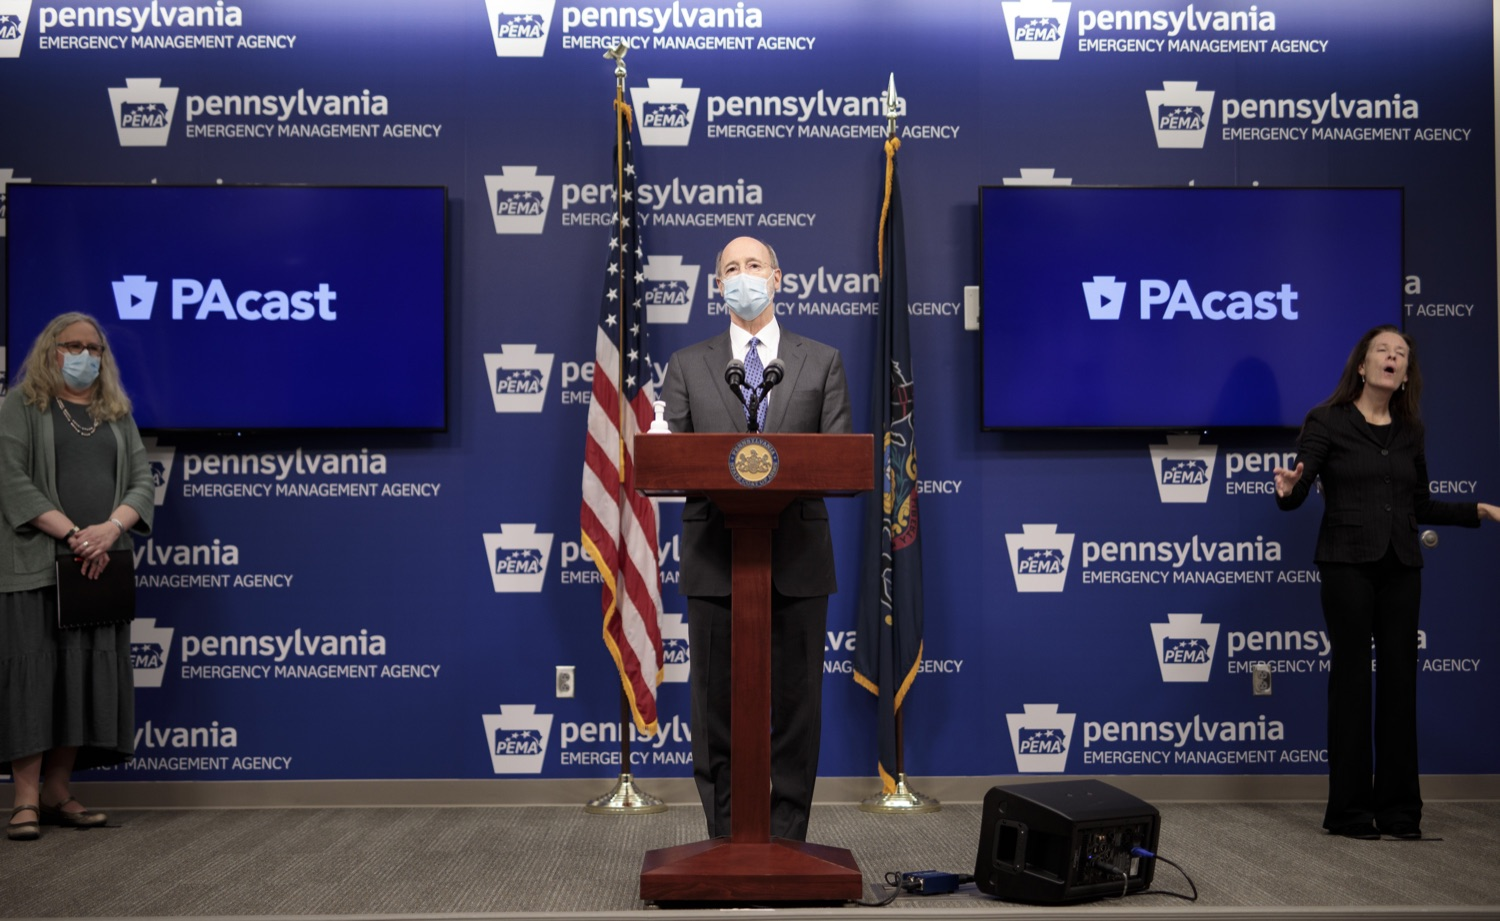 "<a href=""https://filesource.wostreaming.net/commonwealthofpa/photo/18472_gov_vaccine_dz_08.jpg"" target=""_blank"">⇣ Download Photo<br></a>Pennsylvania Governor Tom Wolf speaks at the press conference.  The commonwealths COVID-19 vaccination distribution plan was designed to be fluid and flexible to meet guidance and recommendations from the federal government. Today, Governor Tom Wolf and Secretary of Health Dr. Rachel Levine announced the fourth version of the plan, detailing the updates and how the state is working to ensure safe, swift implementation. Harrisburg, PA  January 8, 2021"